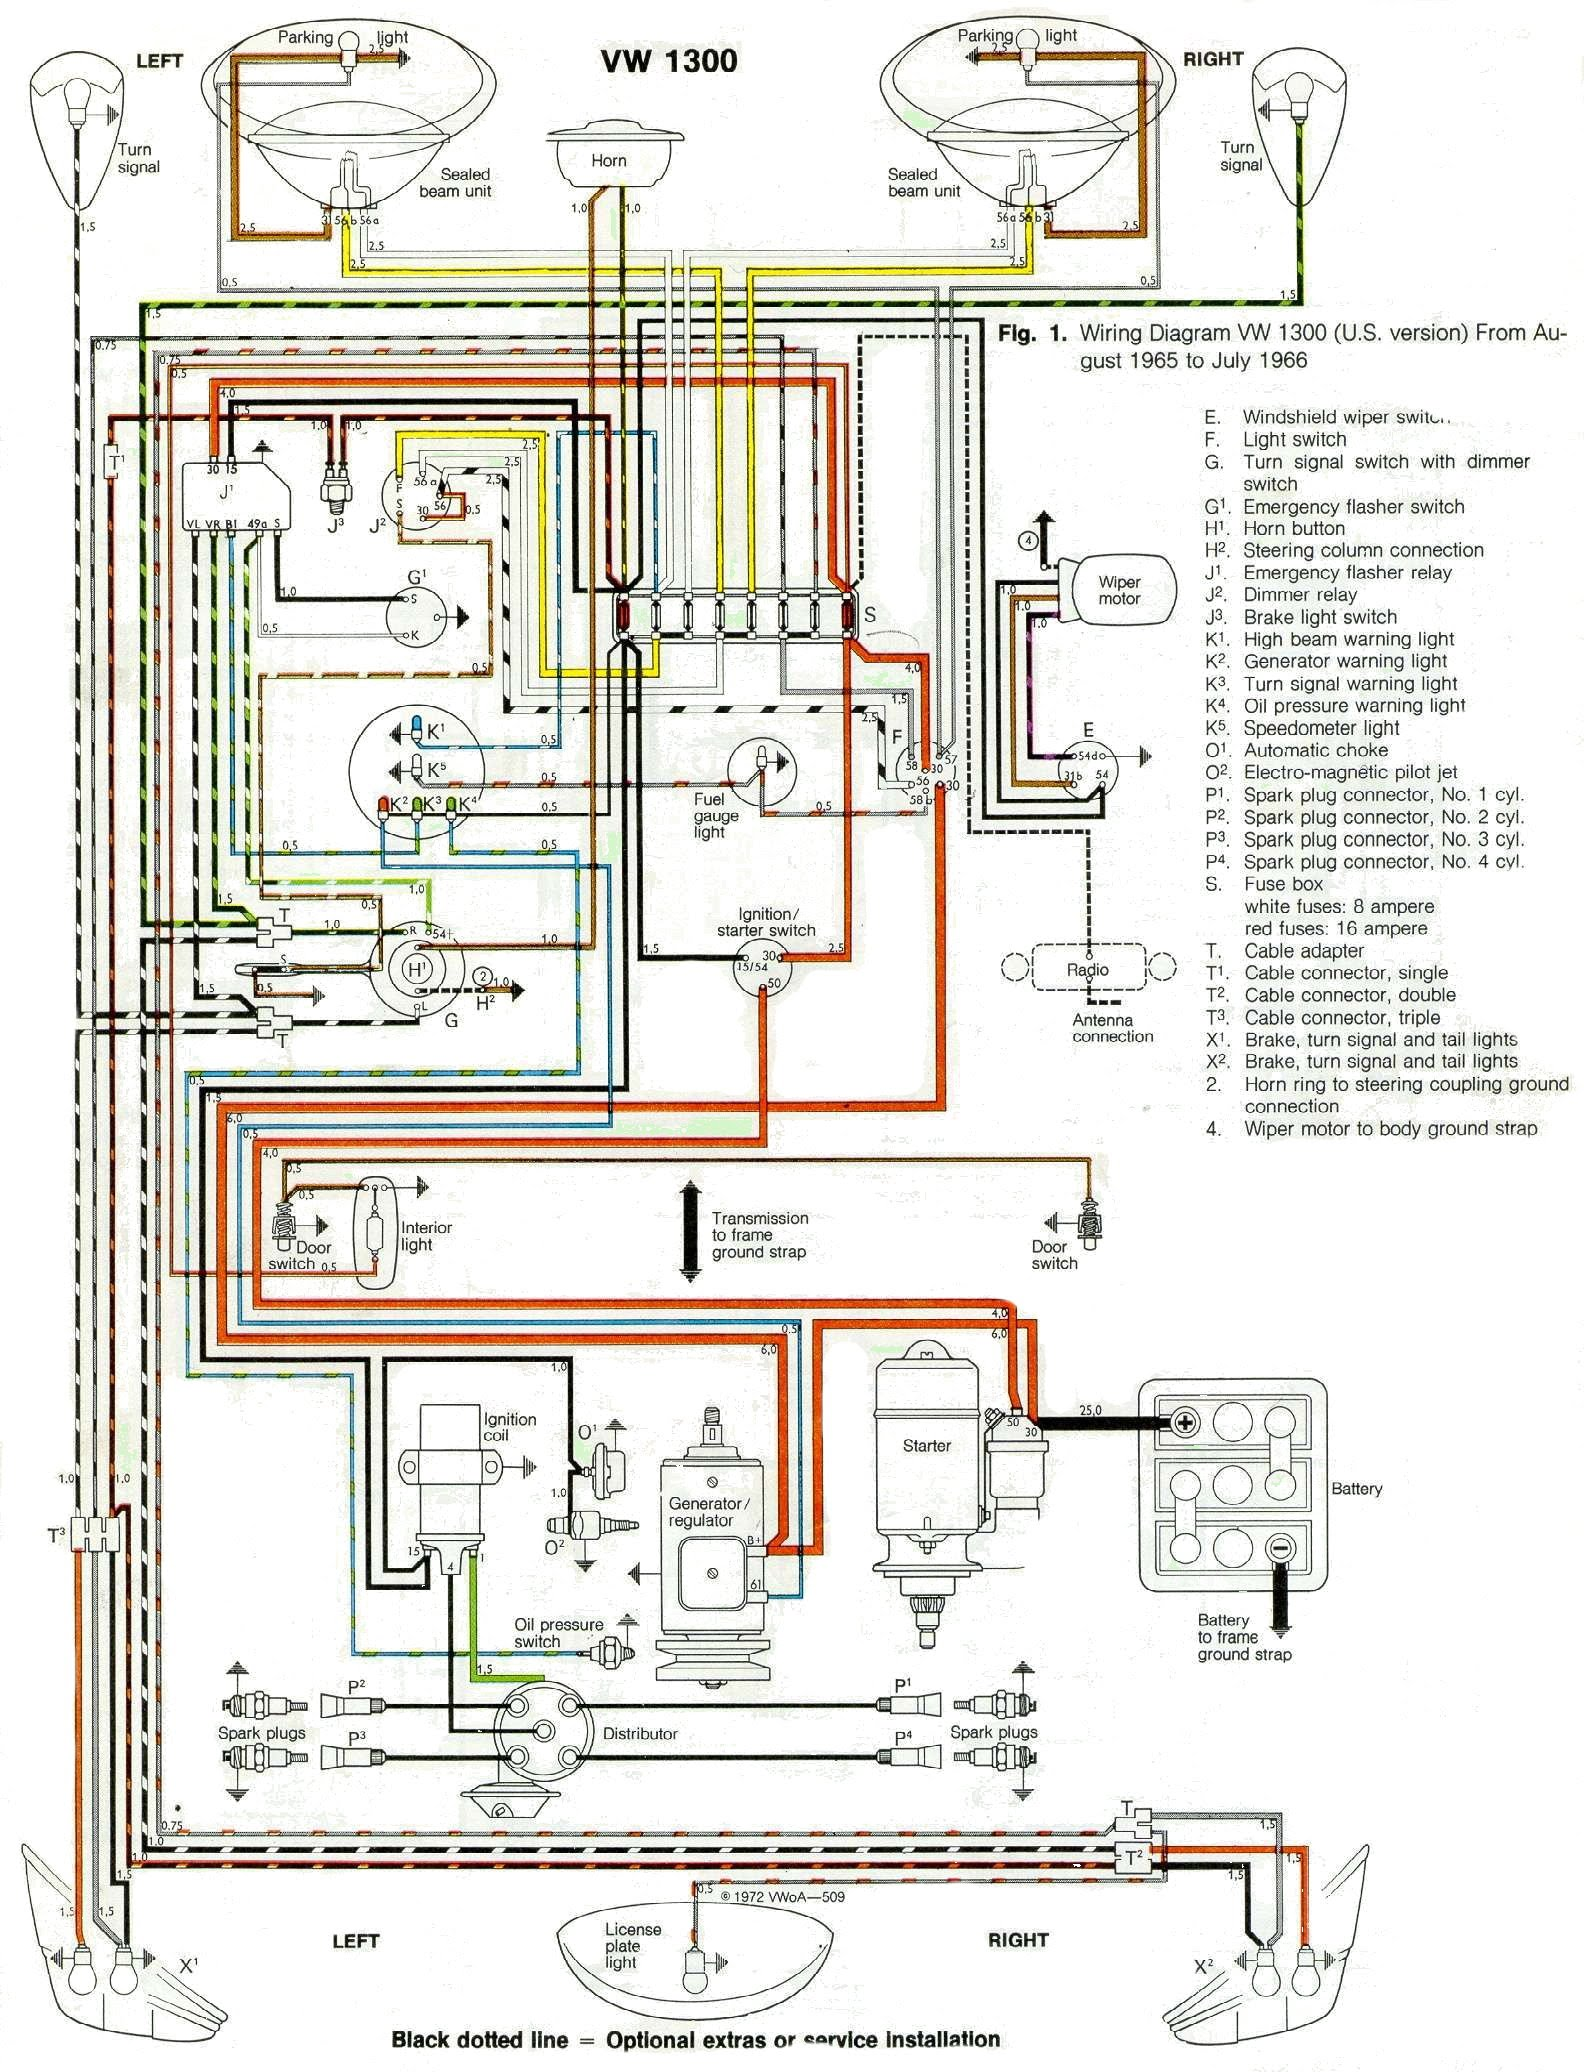 1965 volkswagen 1300 city car wiring diagram diagrams 19191168 vw golf wiring diagram electrical wiring vw citi golf wiring diagram at reclaimingppi.co